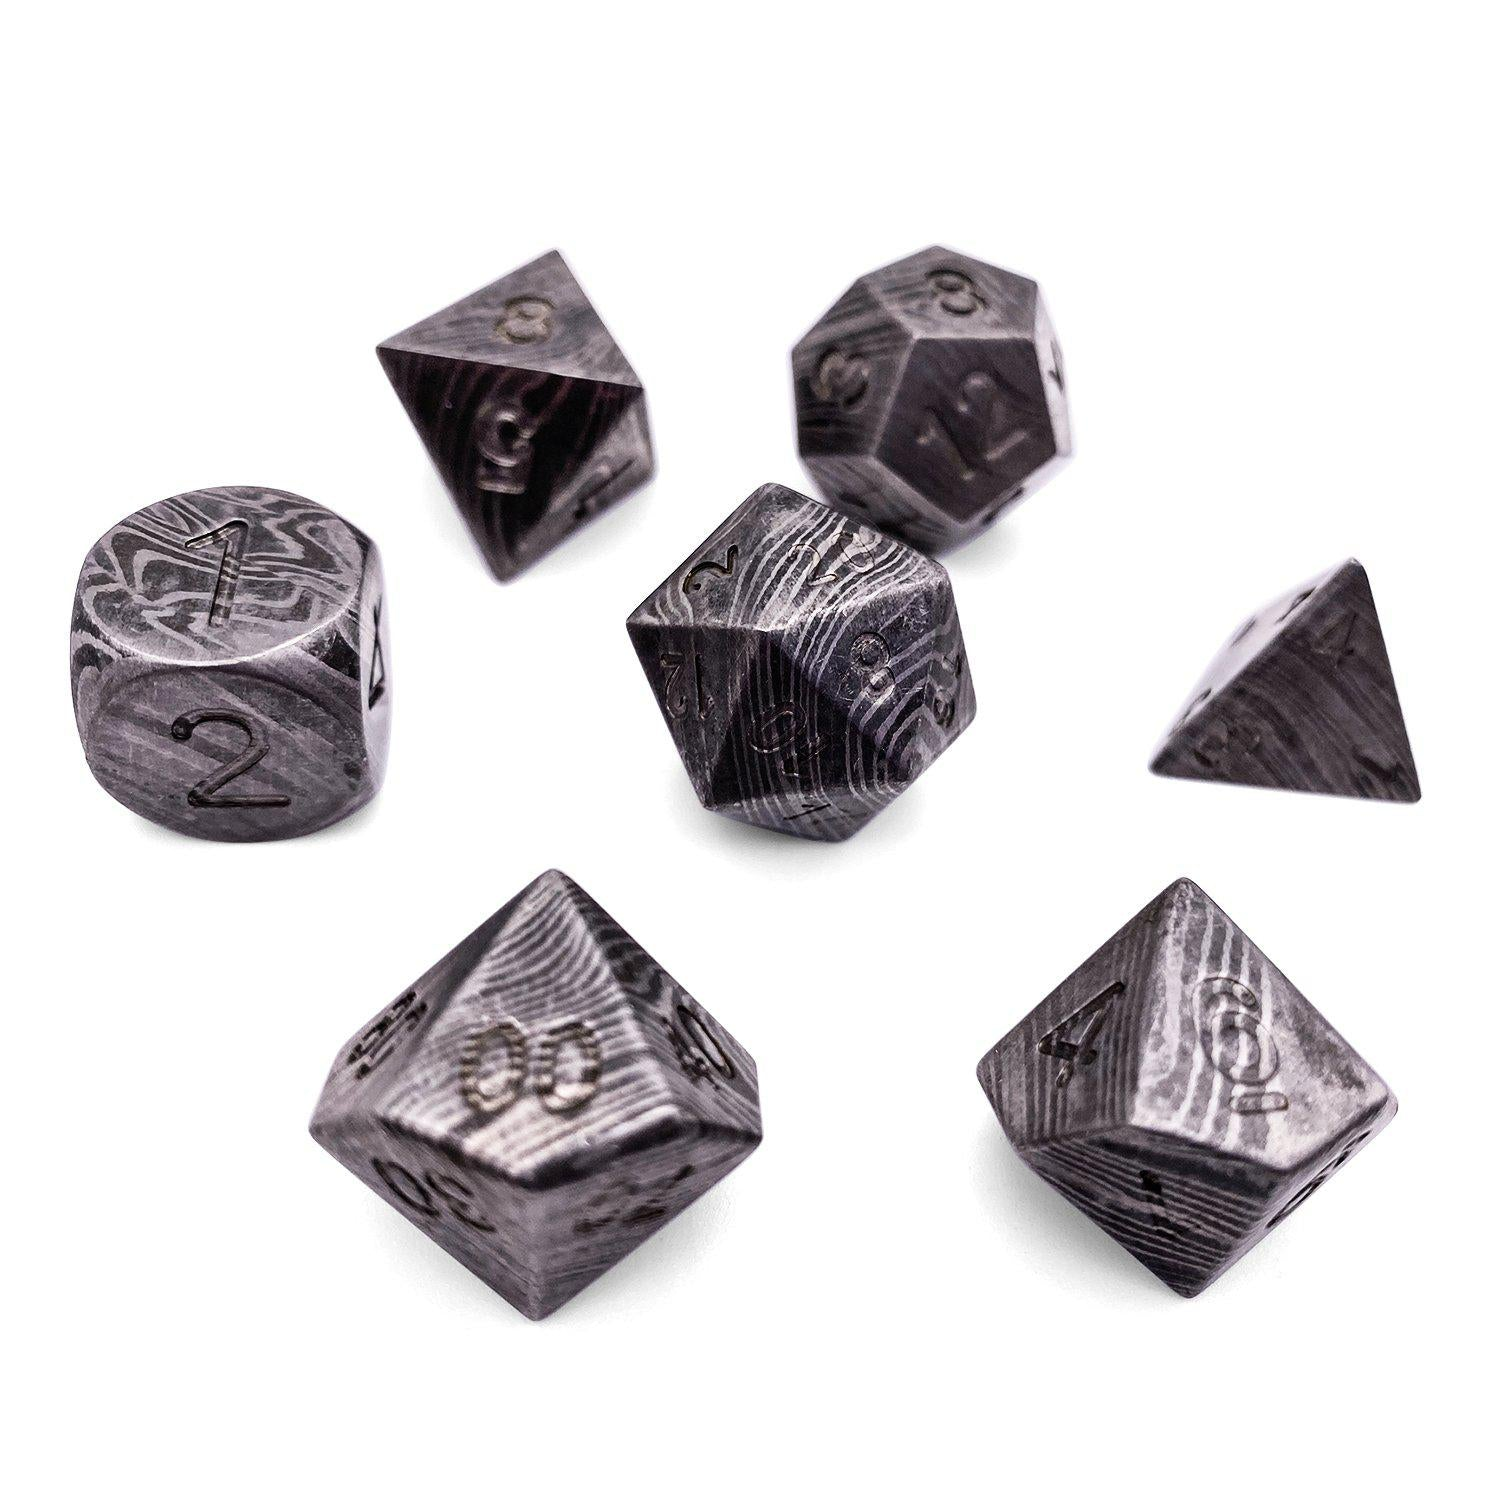 Set Of 7 Damascus Steel Rpg Dice By Norse Foundry Polyhedral Dice Set Weighing up to 50% more than average cheap plastic dice, they guarantee truly random drops for truly epic adventures! norse foundry